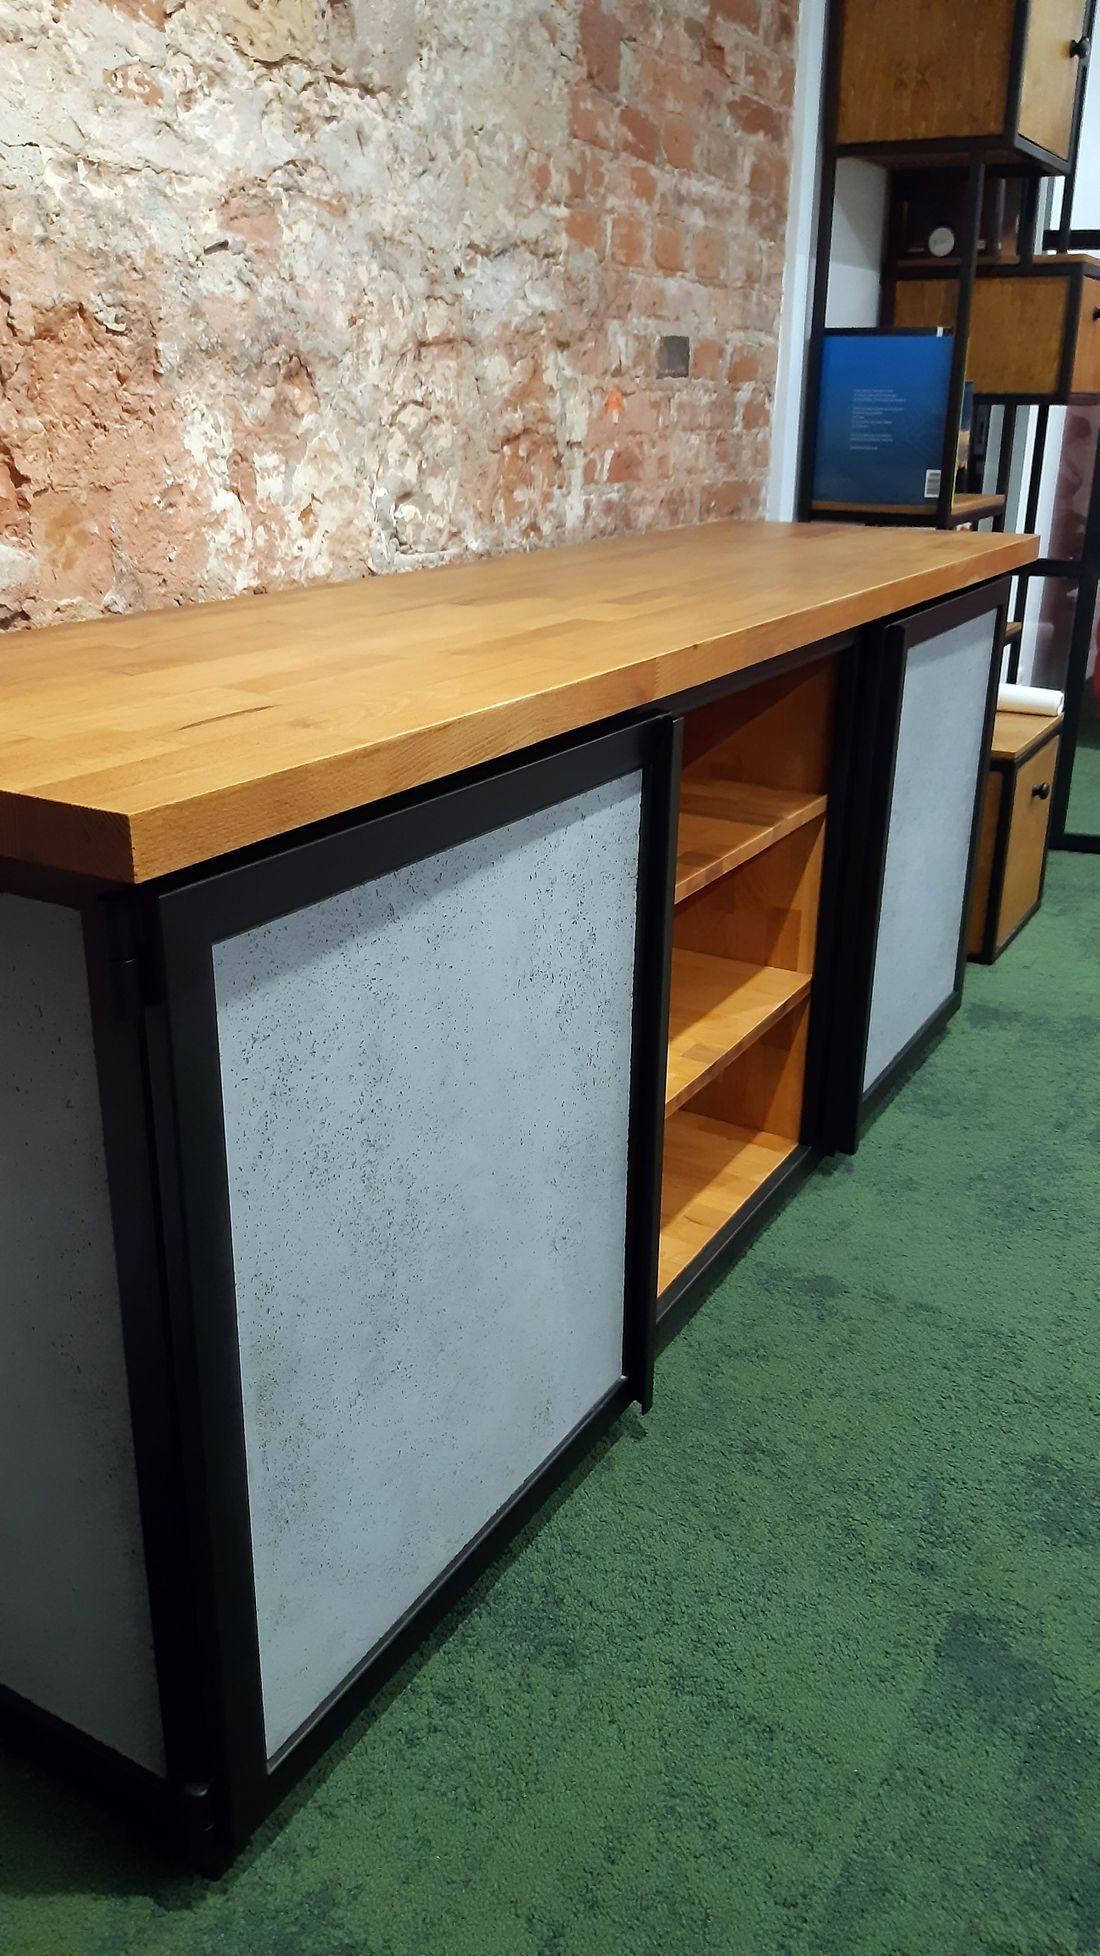 Cabinet doors in Chest of Drawers made of glass-fibre-reinforced structural concrete based on a metal frame